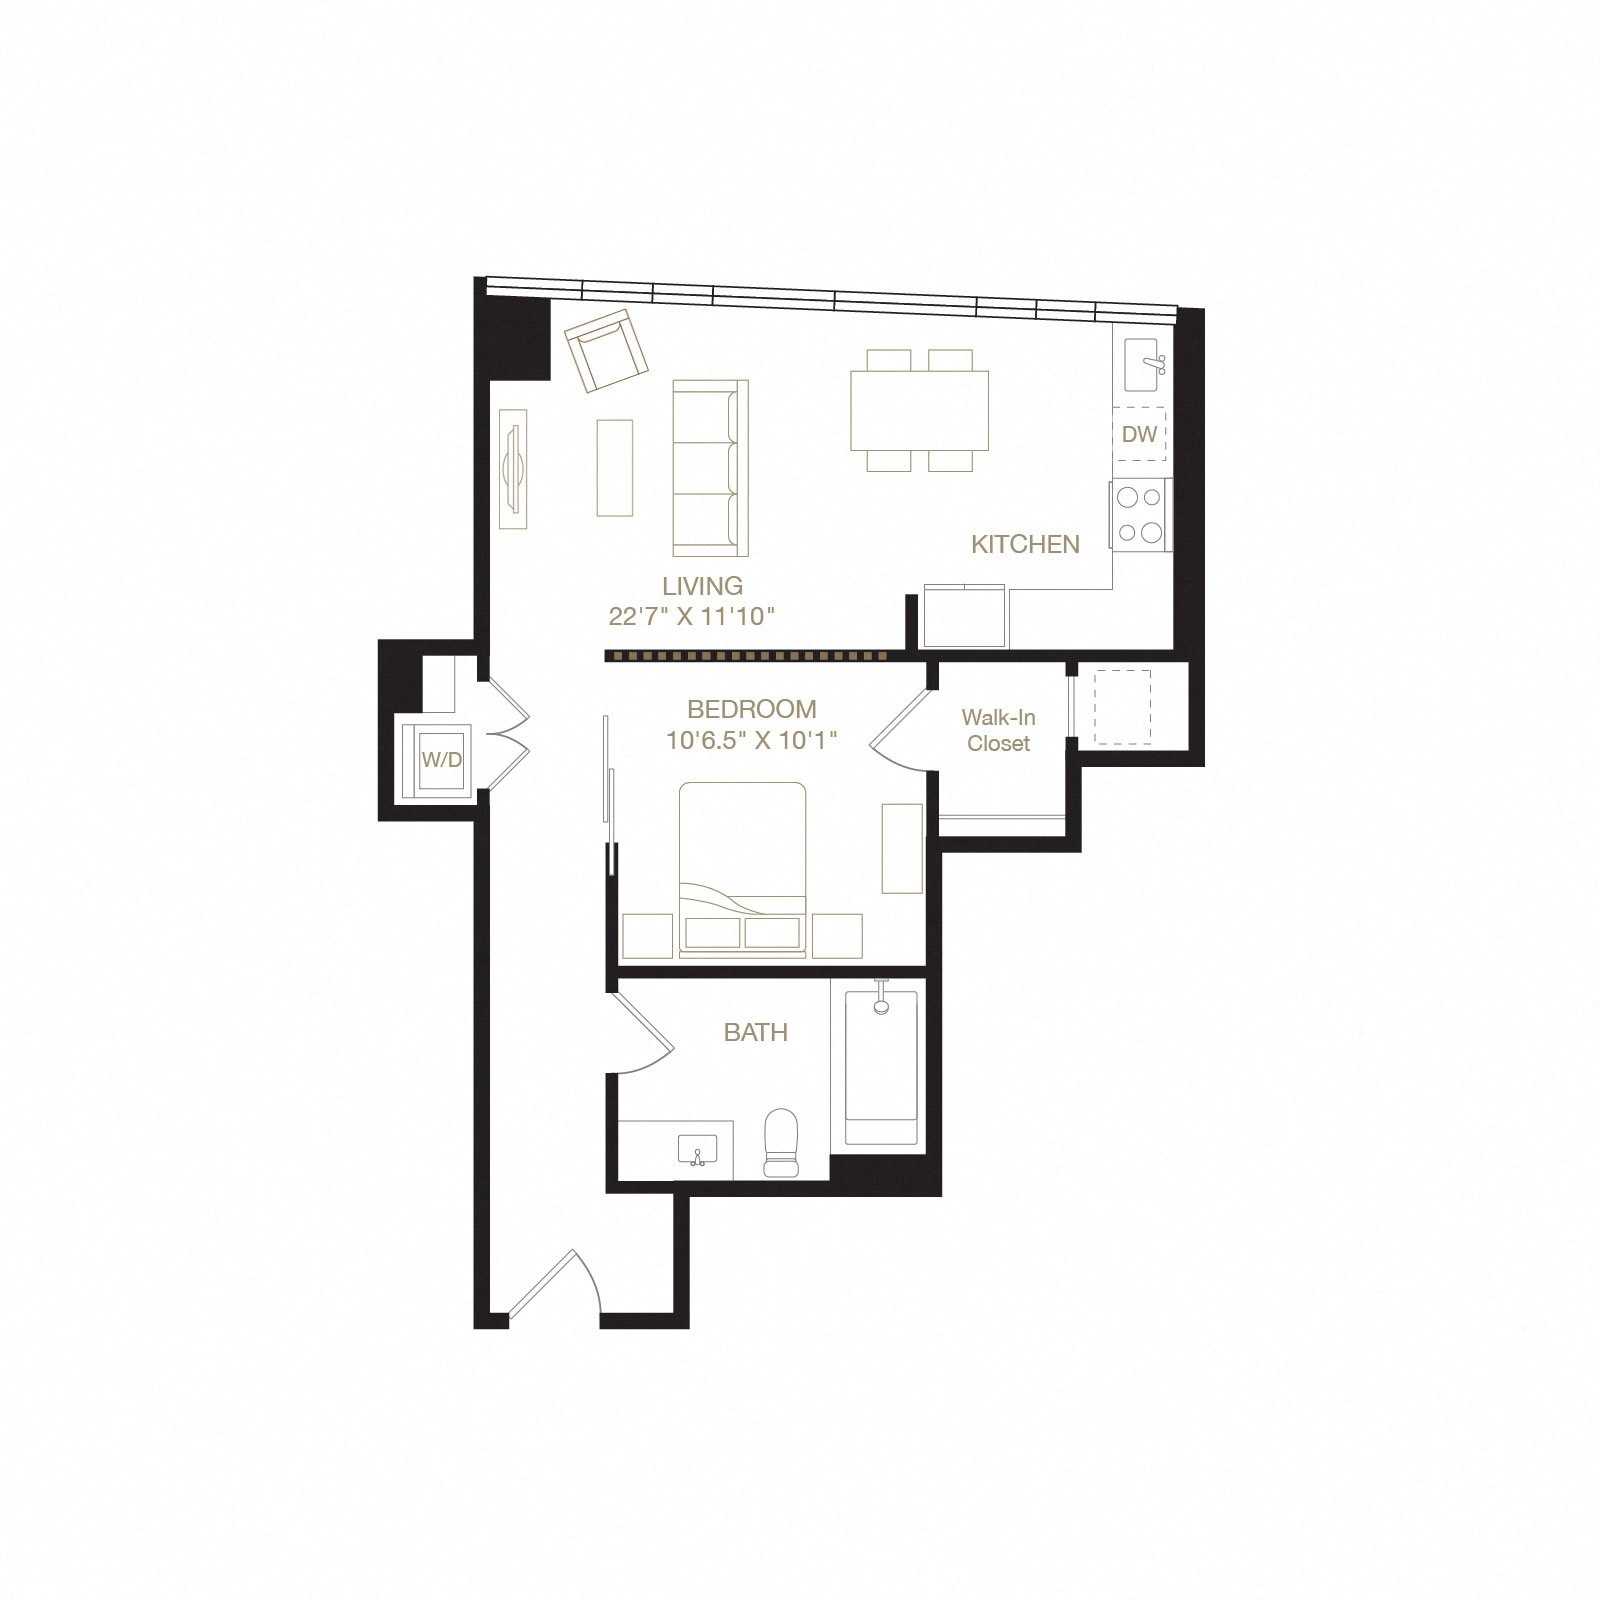 Joaquin Miller floor plan diagram. One bedroom, one bathroom, a kitchen and living  area, and a washer dryer.